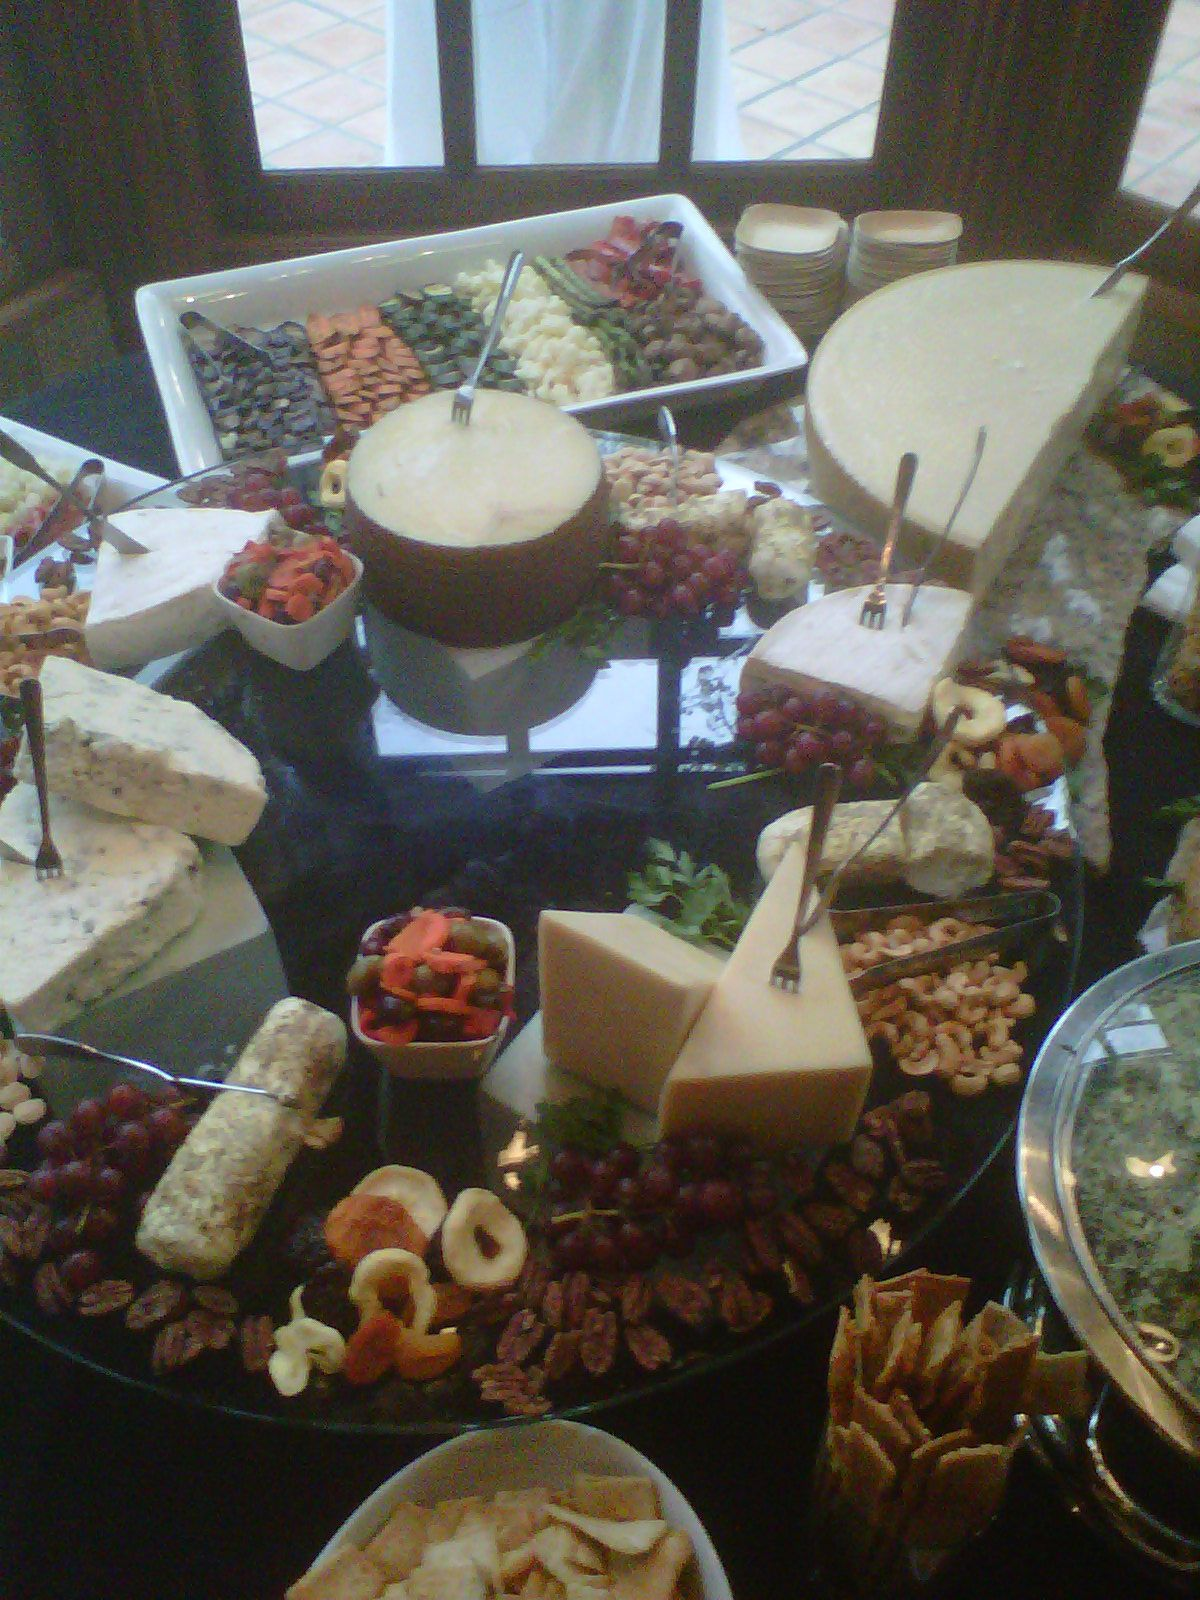 Cheese display i put together at wedding in anaheim hills